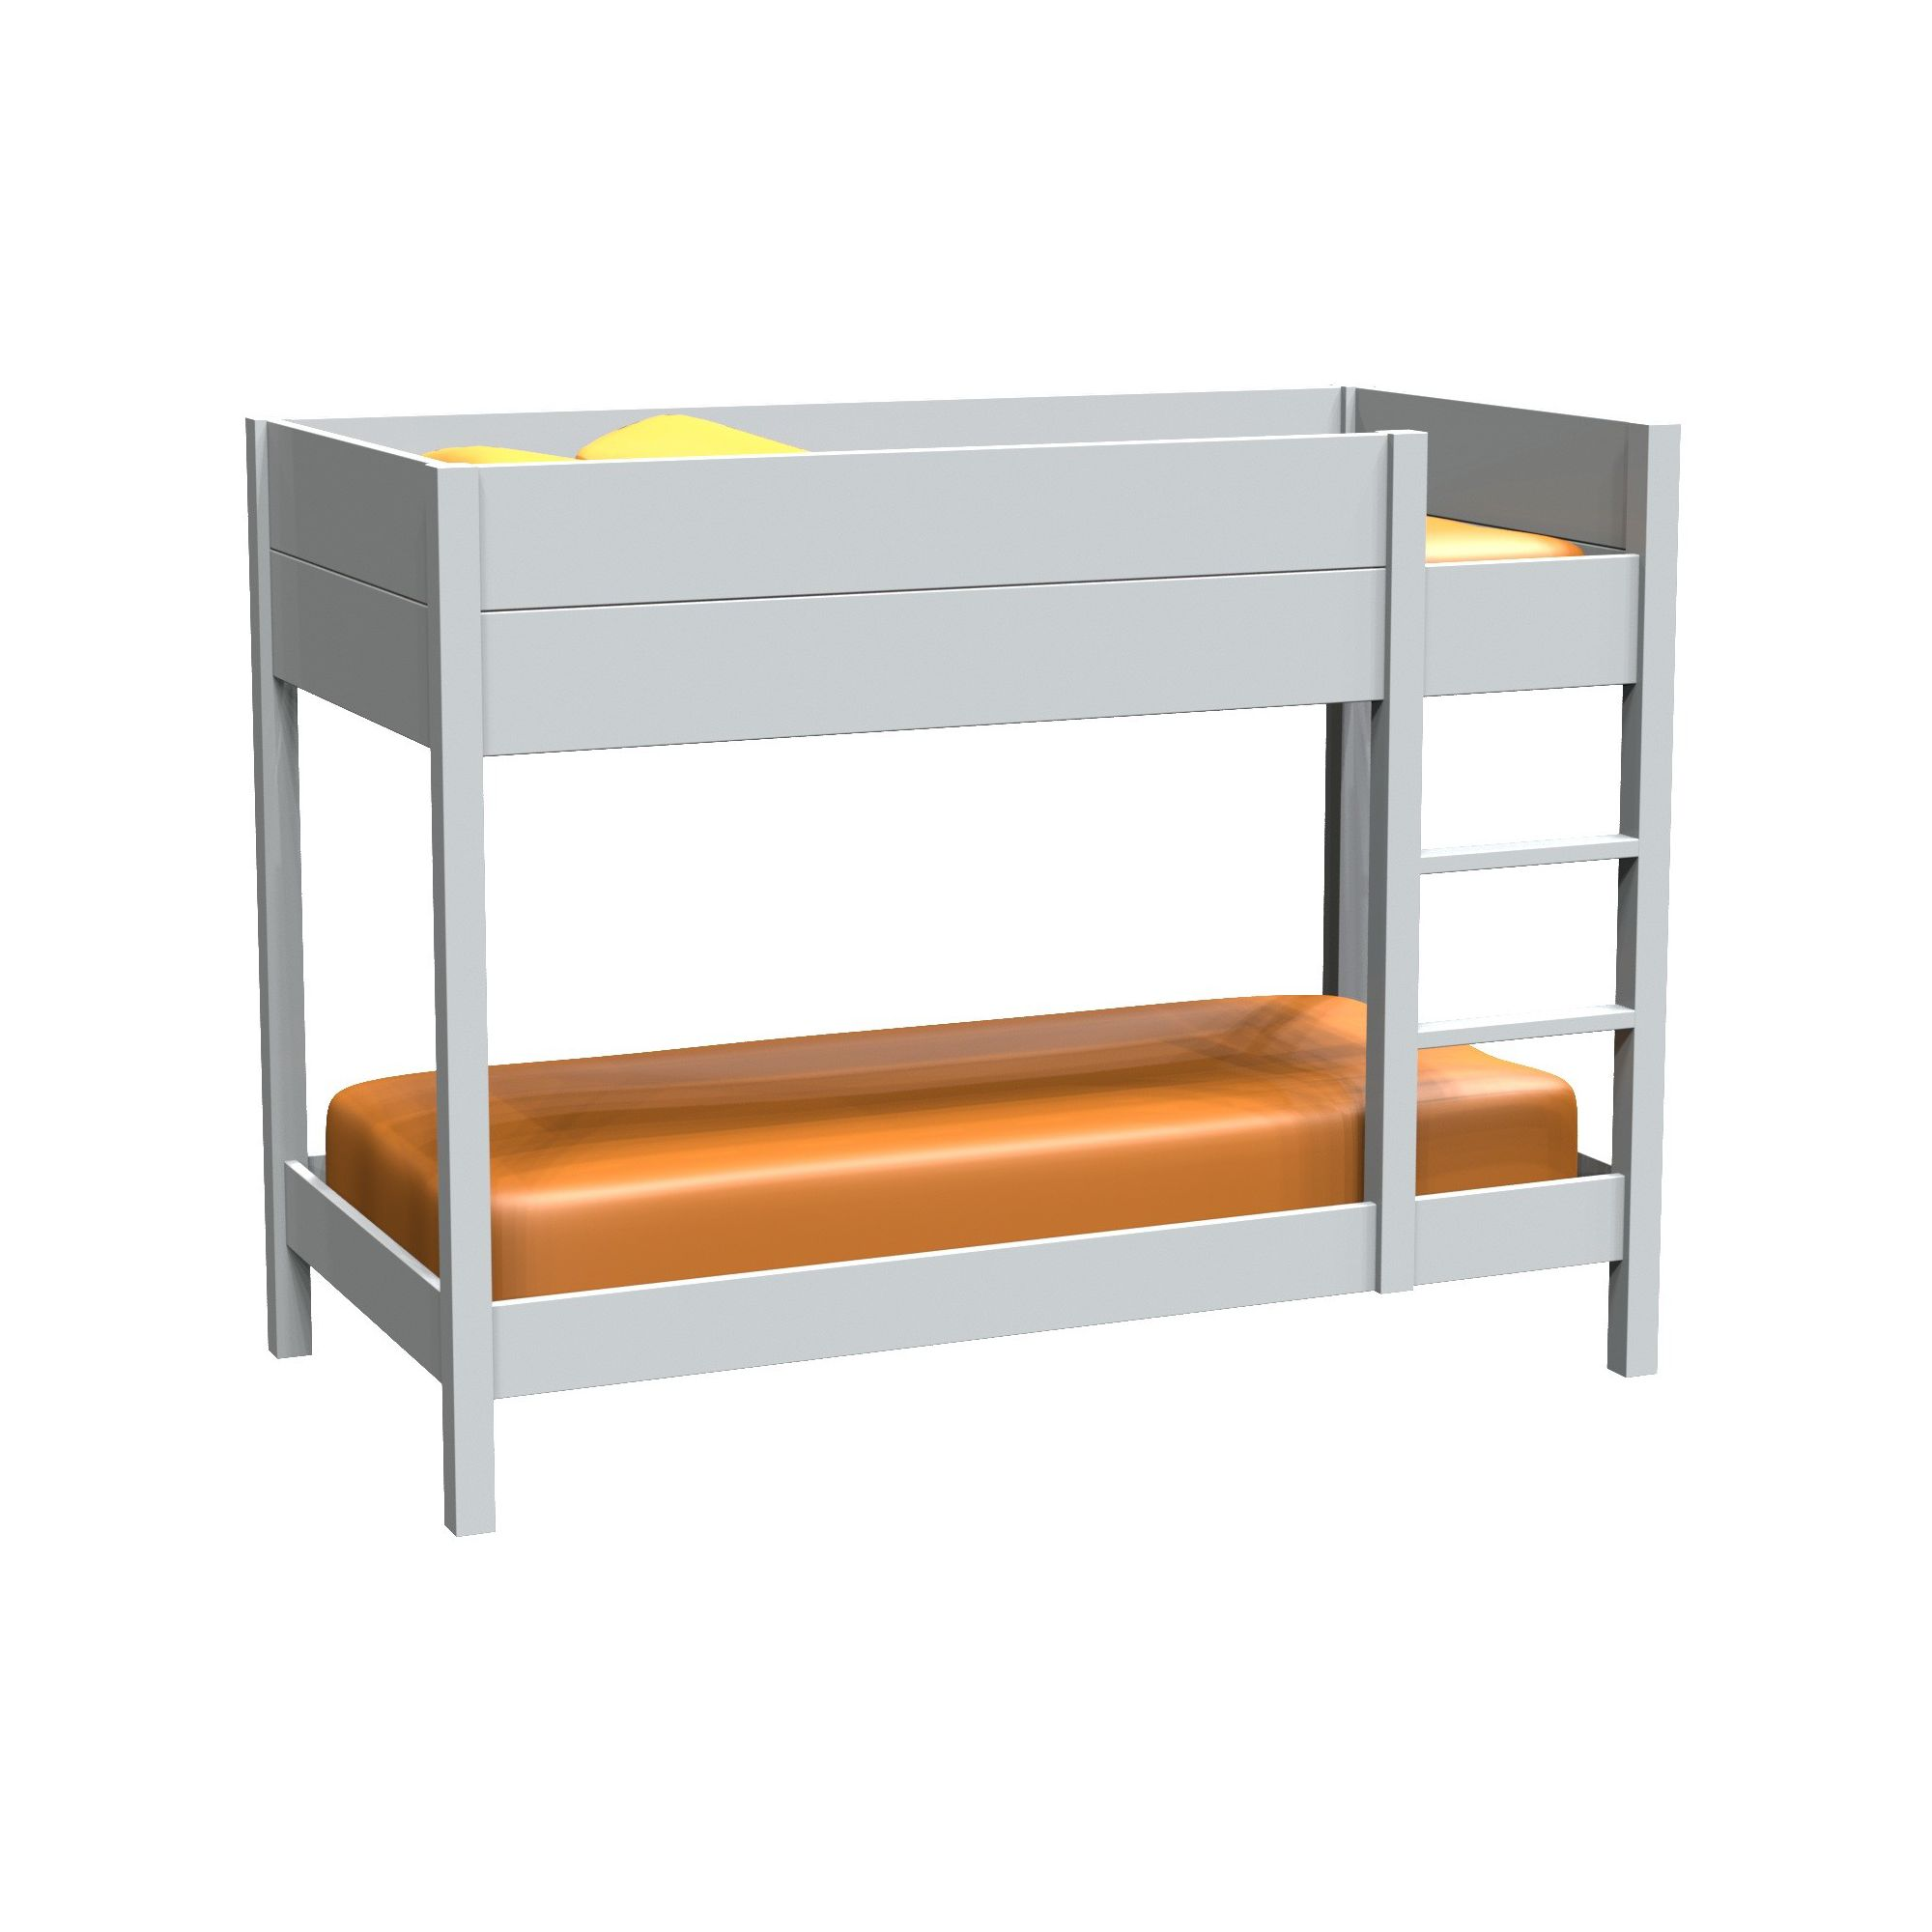 Bunk bed width 90cm pred second hand bunk beds 100 for Second hand bunk beds